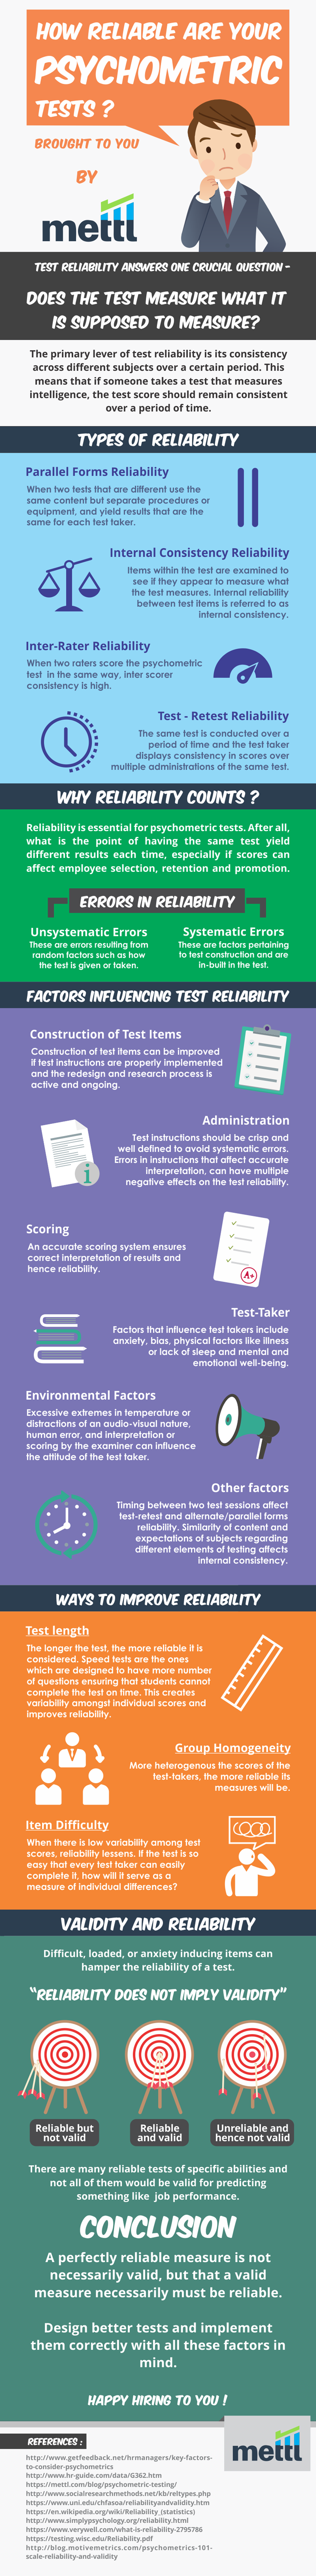 how-reliable-are-your-psychometric-tests